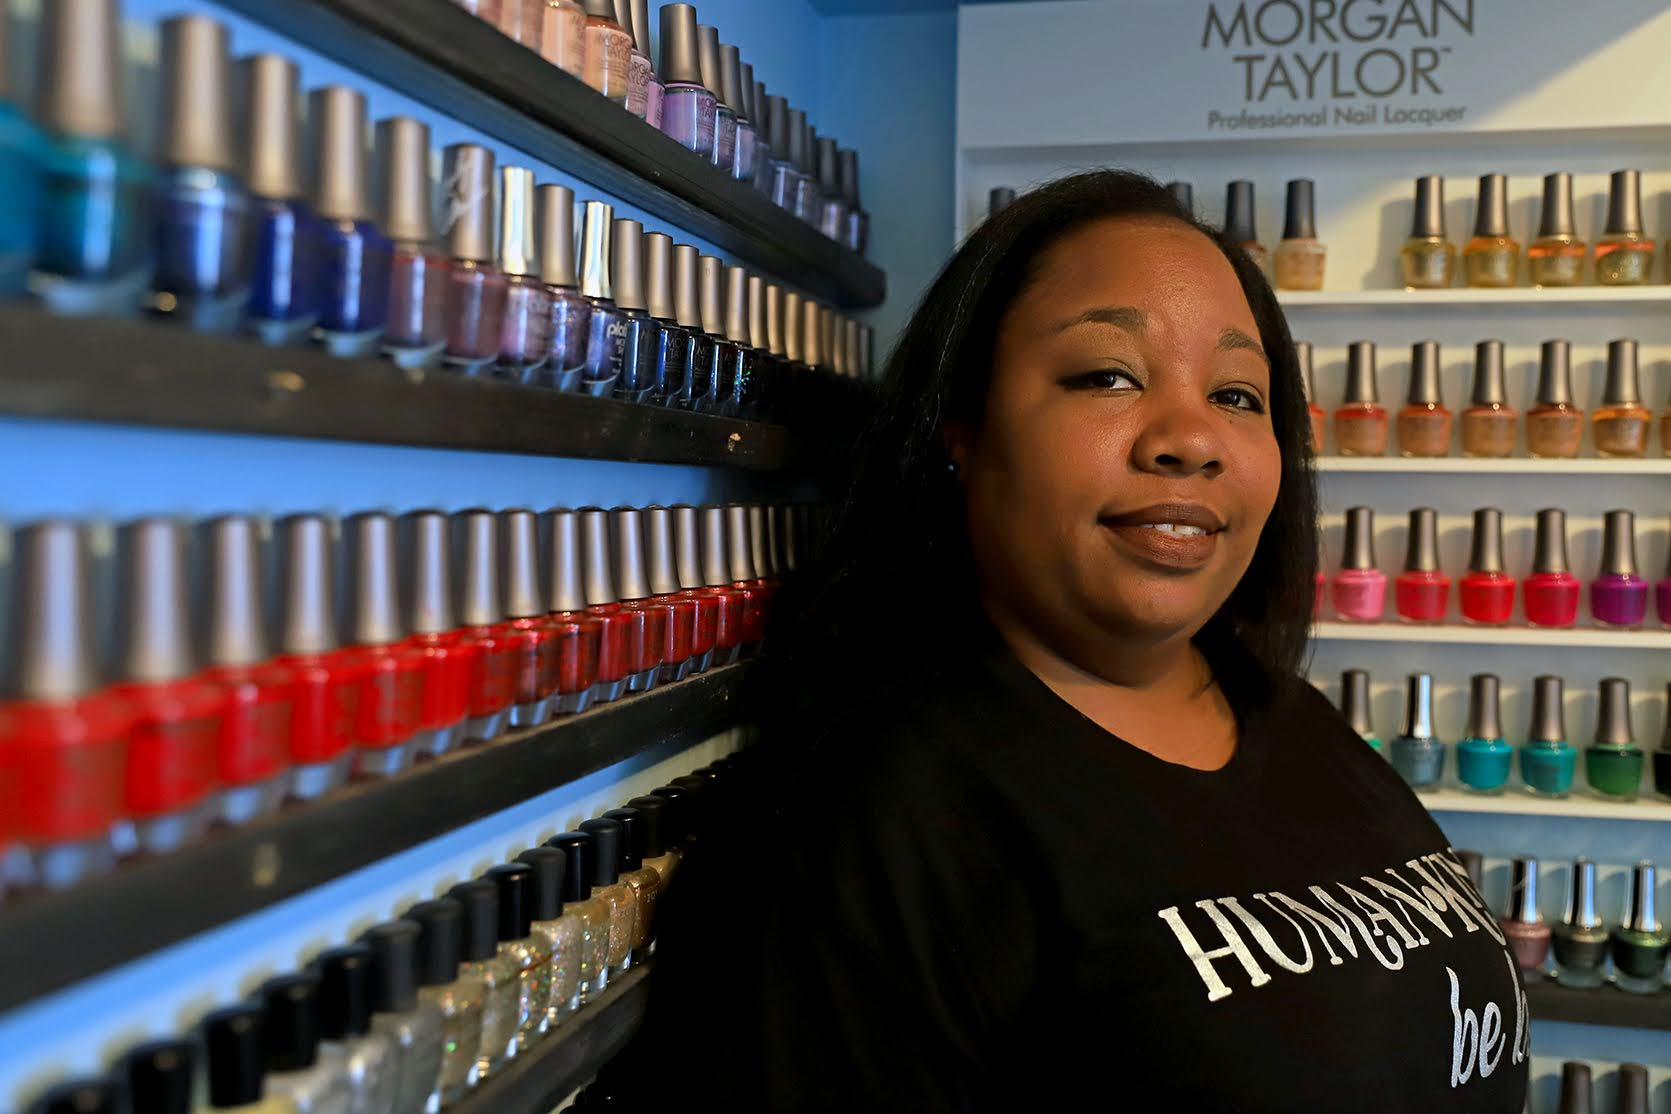 A Black woman stands in front of a row of nail polish colors.